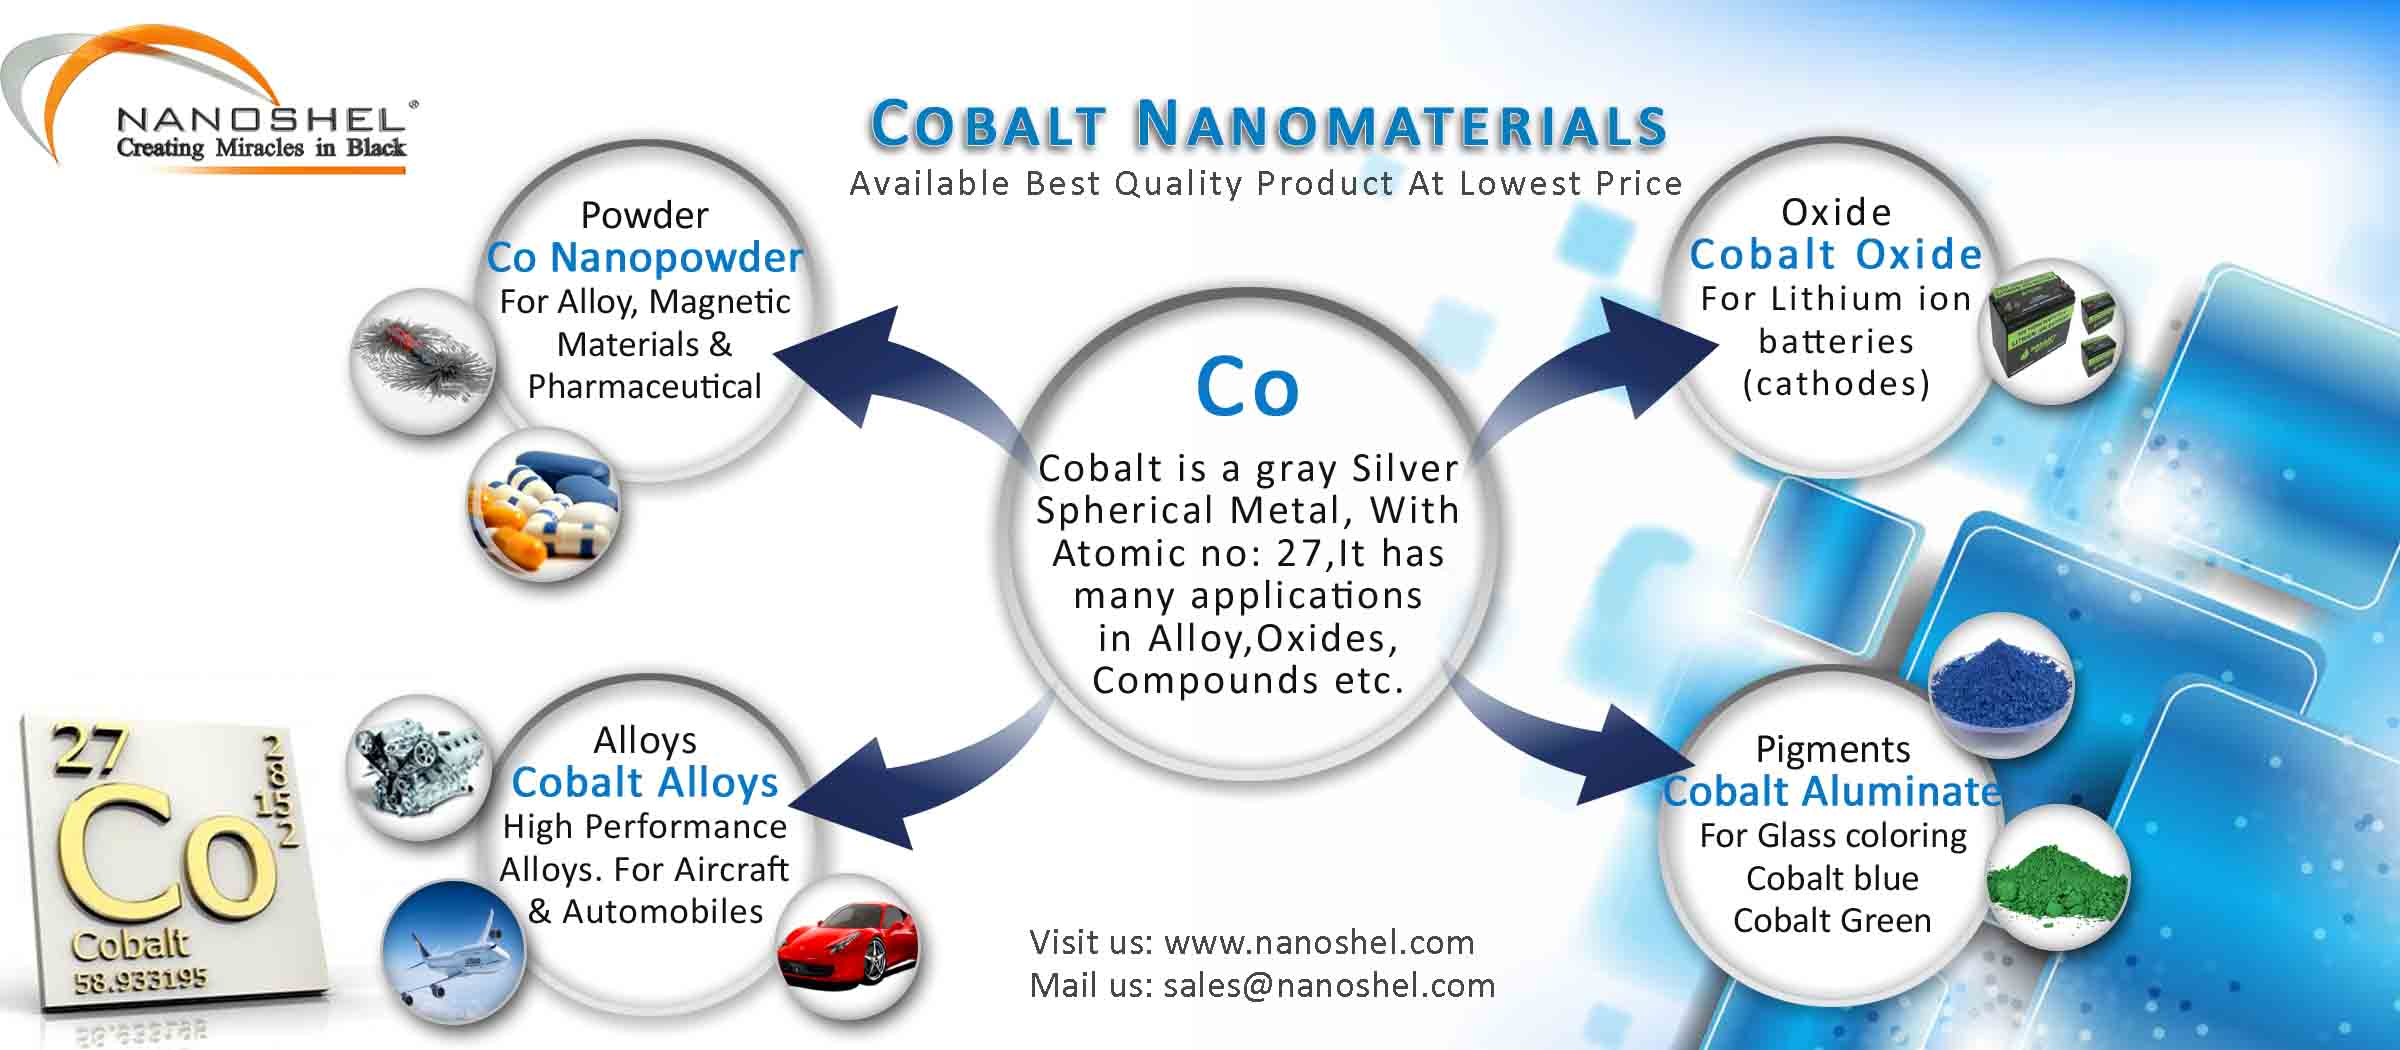 Cobalt Nanoparticles Properties